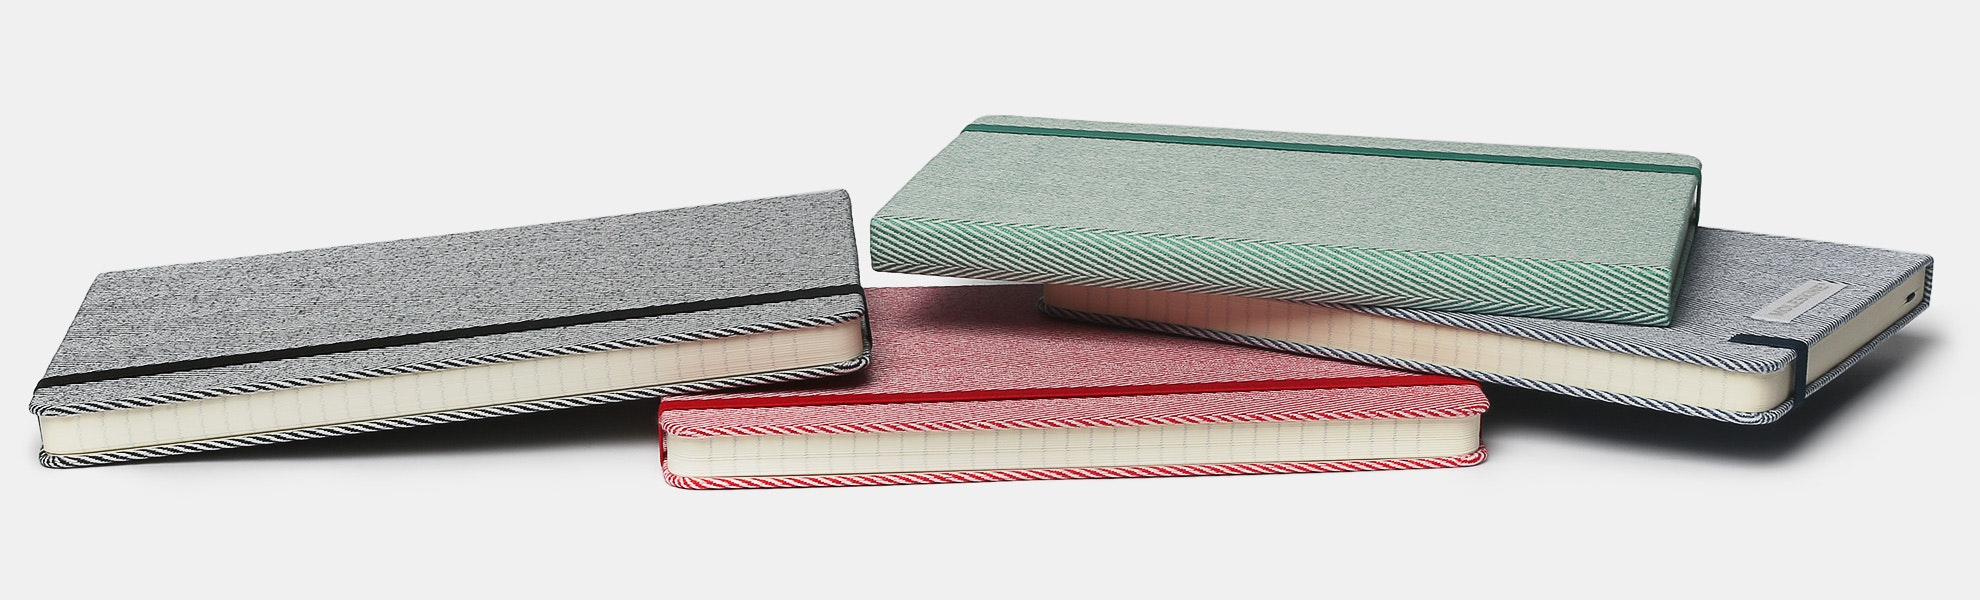 Moleskine Blend Large Notebooks (2-Pack)